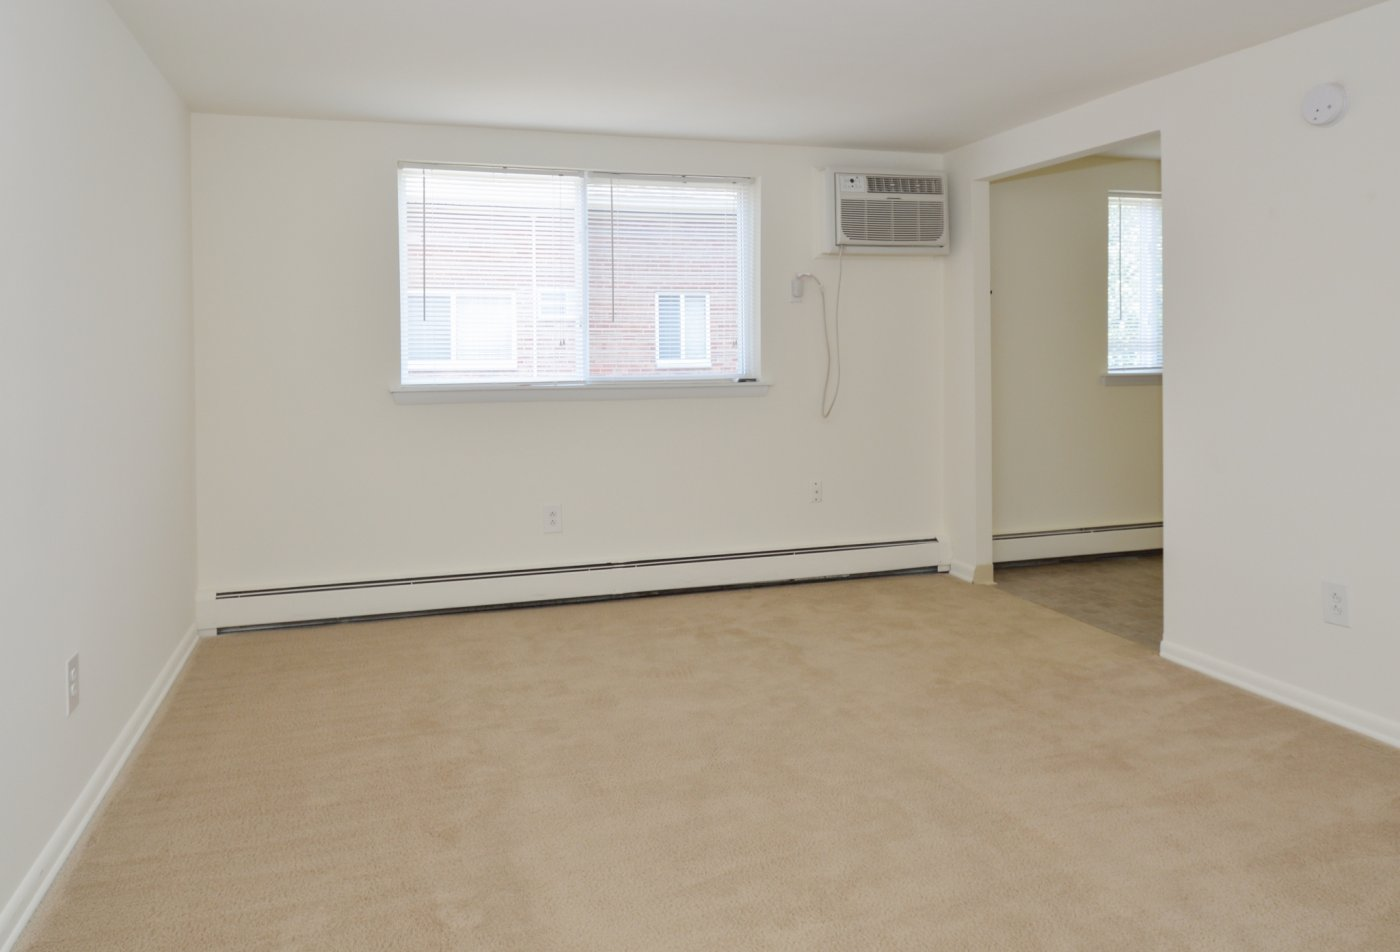 Spacious Living Room | Apartments in Boothwyn, PA | Boothwyn Court Apartments